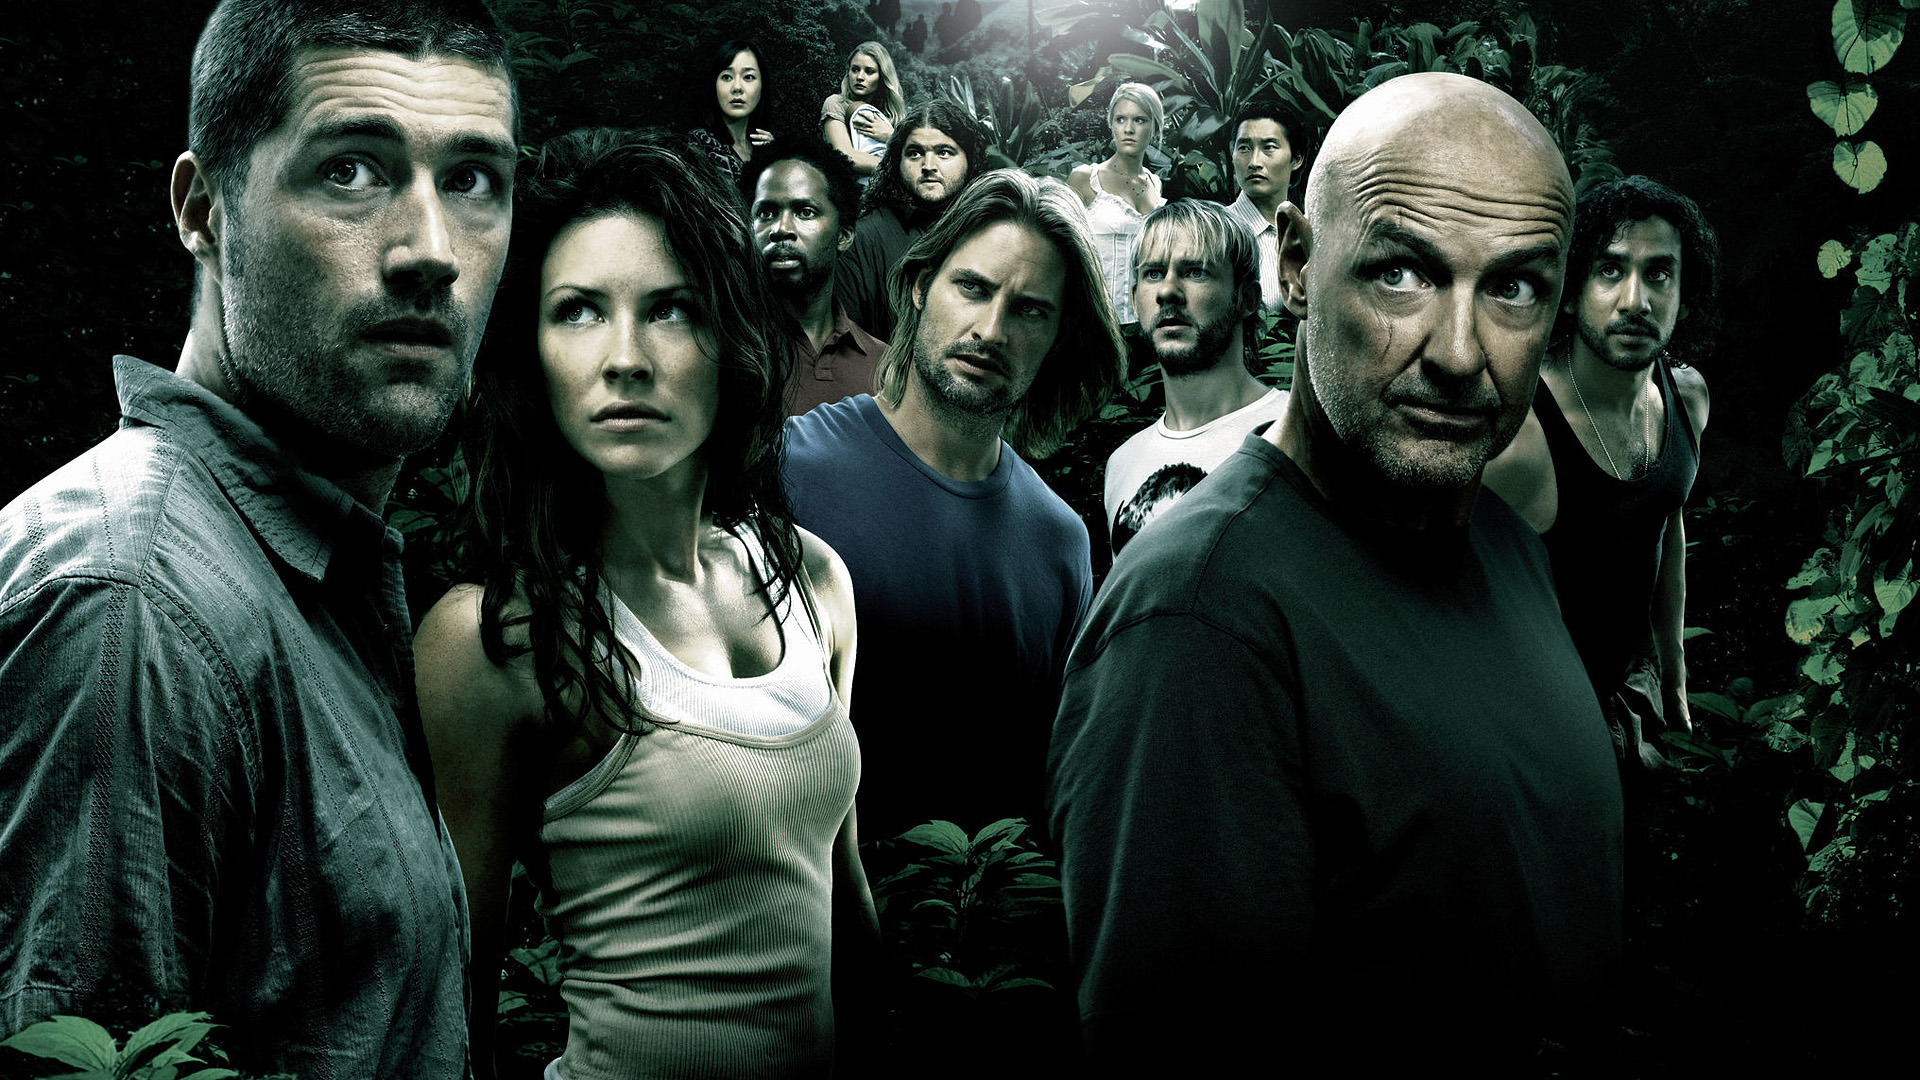 Whatever happened to the cast members from 'Lost'?